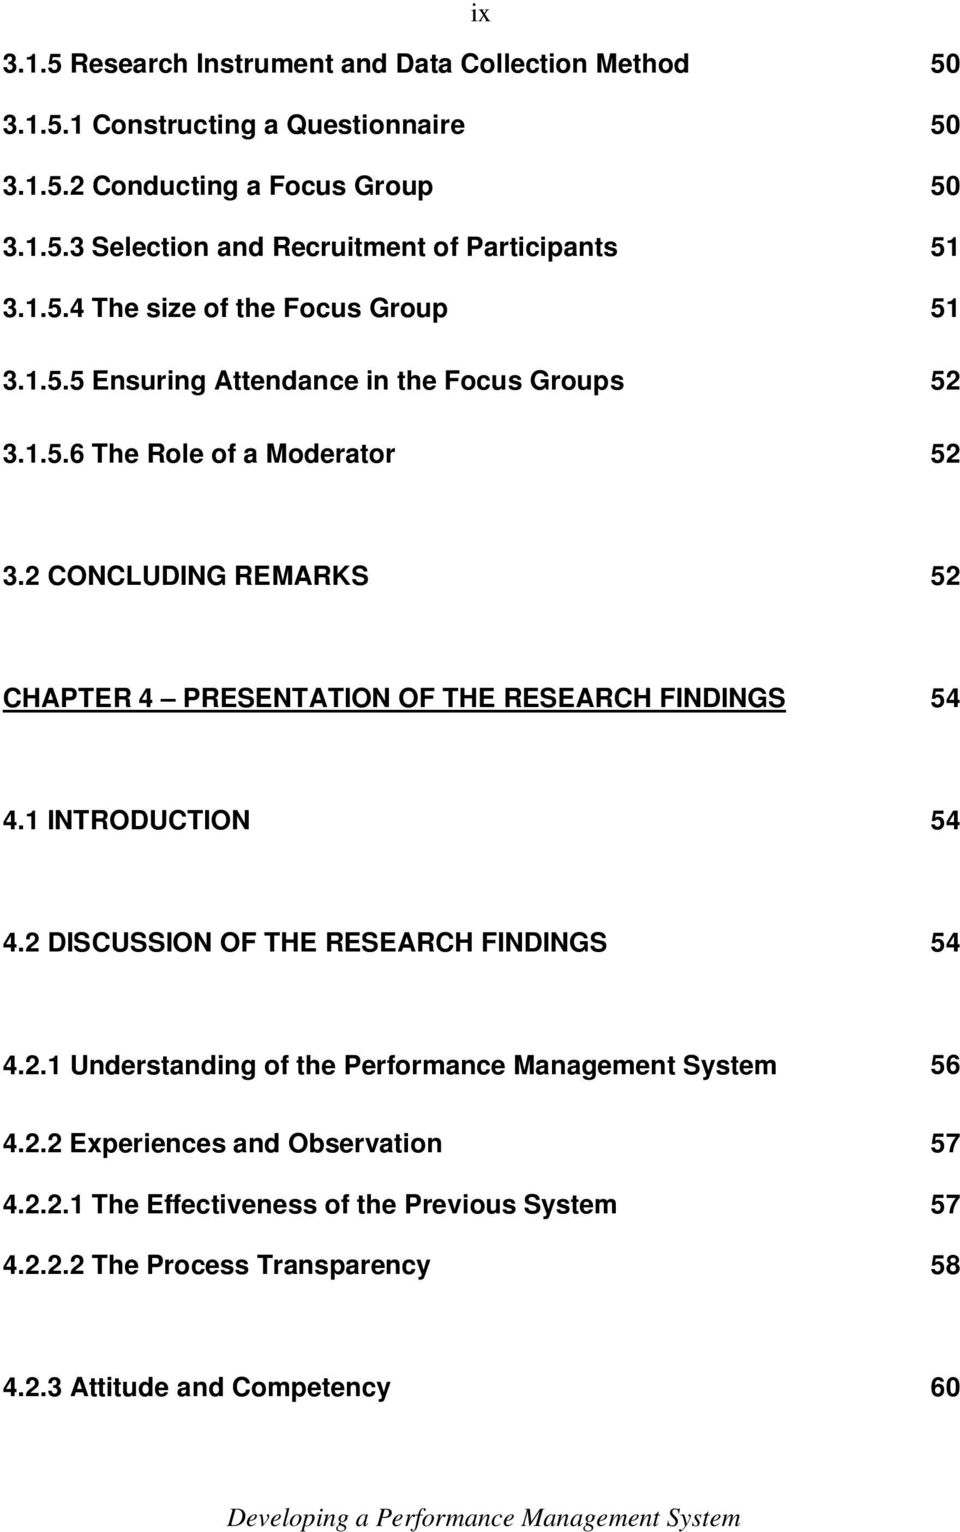 2 CONCLUDING REMARKS 52 CHAPTER 4 PRESENTATION OF THE RESEARCH FINDINGS 54 4.1 INTRODUCTION 54 4.2 DISCUSSION OF THE RESEARCH FINDINGS 54 4.2.1 Understanding of the Performance Management System 56 4.